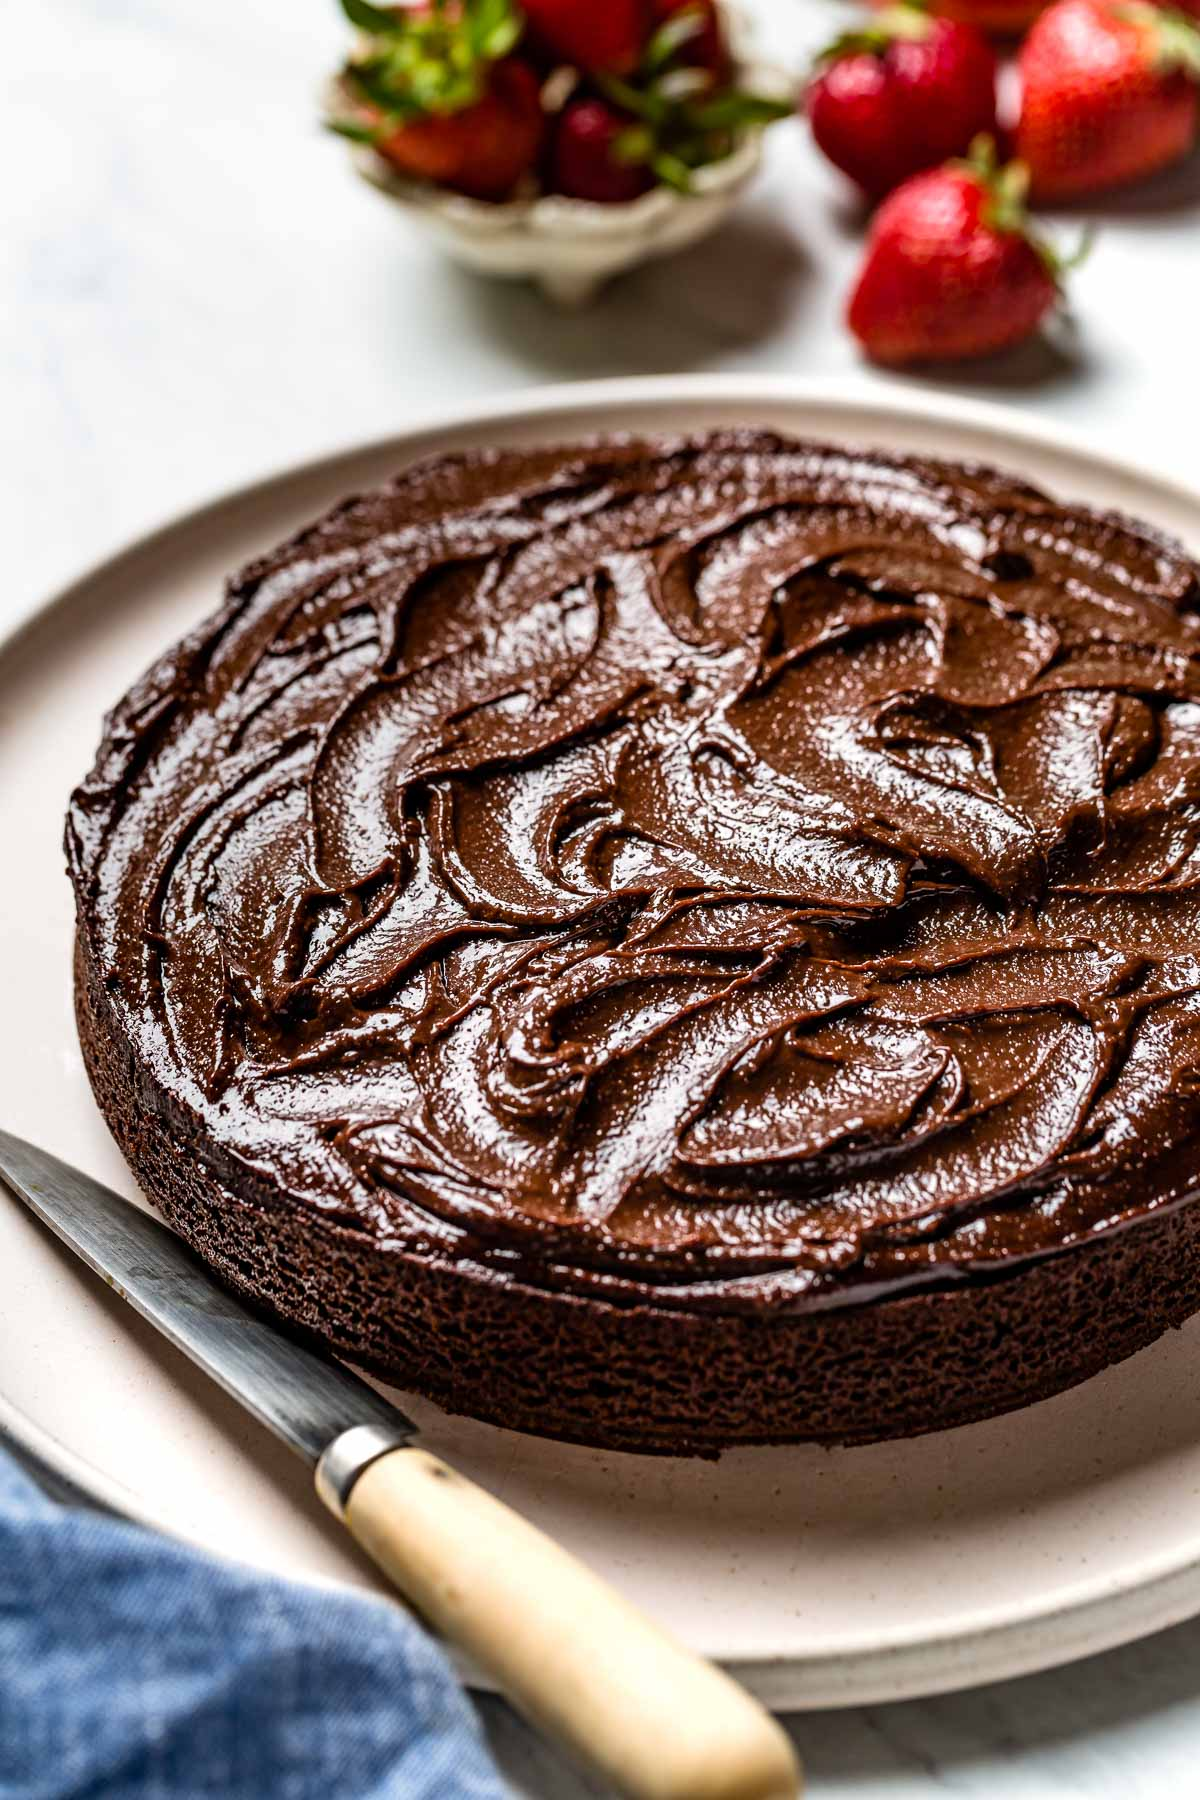 Almond flour chocolate cake spread with chocolate frosting with a knife on the side